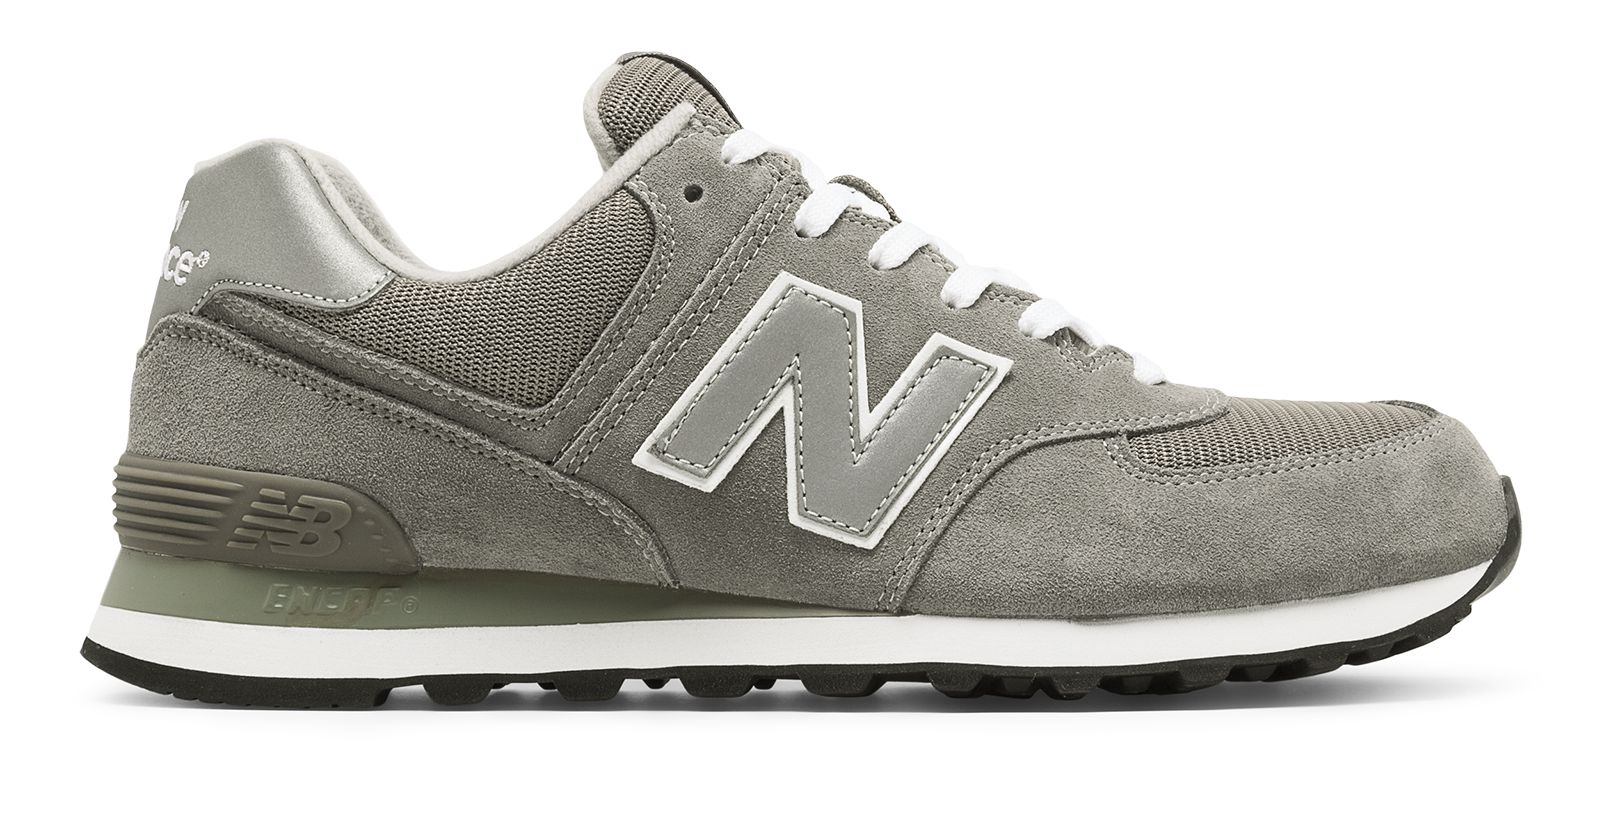 huge selection of 1a086 adb55 Details about New Balance Female Womens 574 Core Limited Edition  Retro-Style Running Shoe Grey